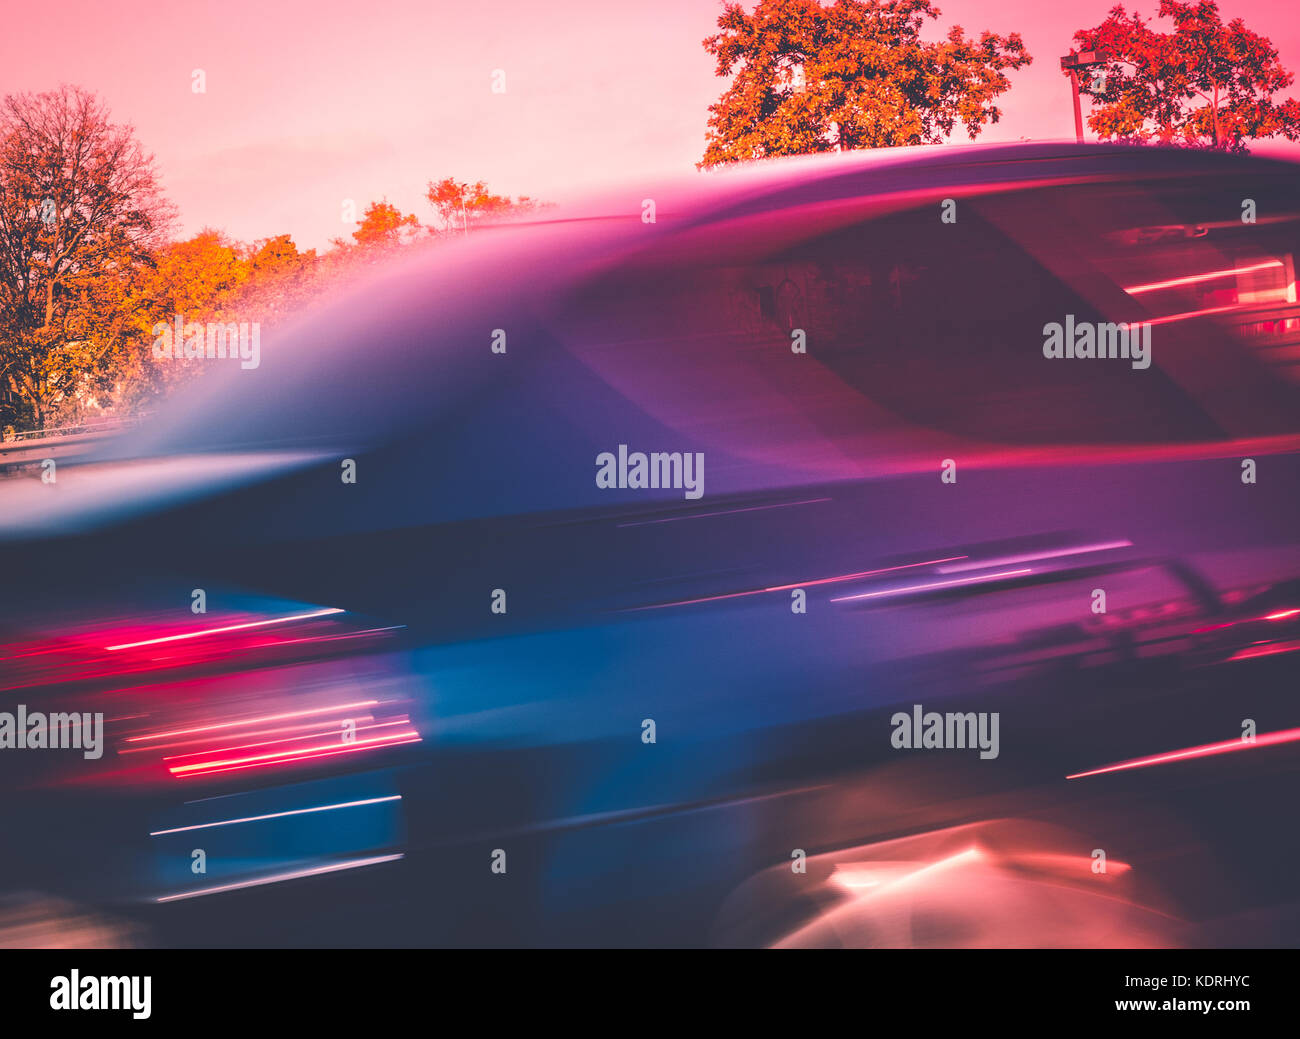 abstract motion blur picture of a fast driving car - Stock Image